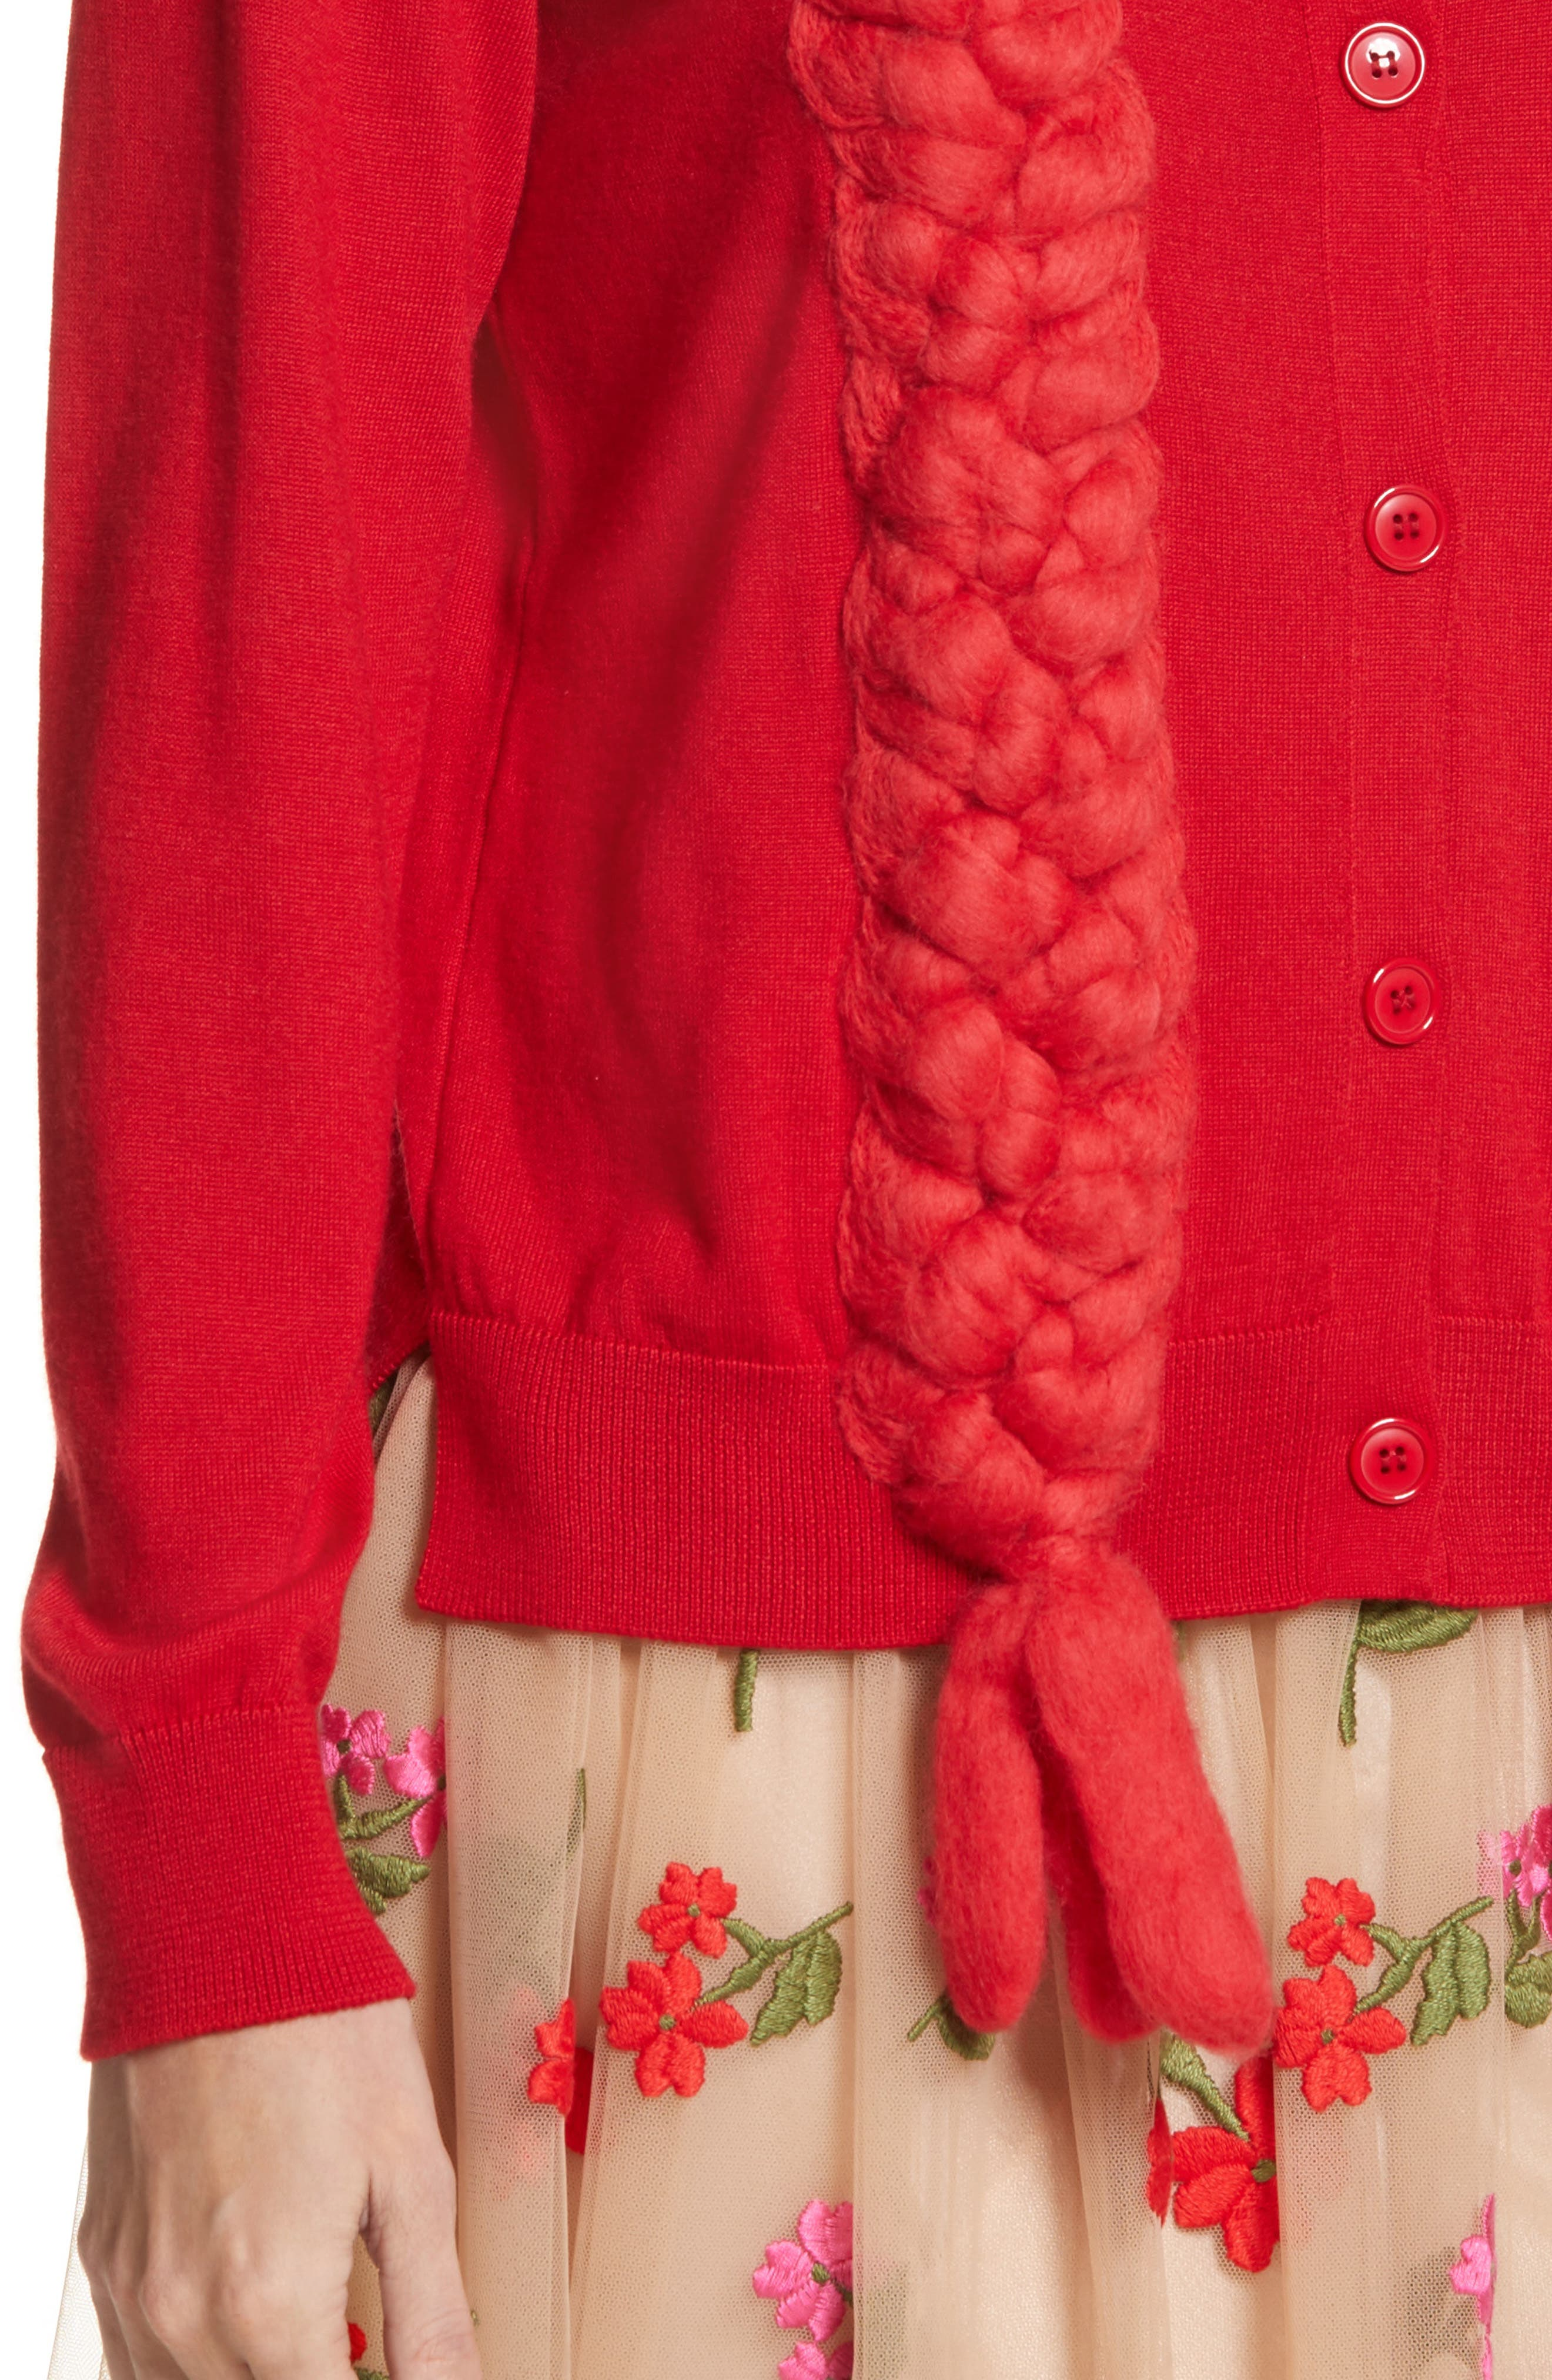 Felted Plait Merino, Silk & Cashmere Button Cardigan,                             Alternate thumbnail 4, color,                             Red